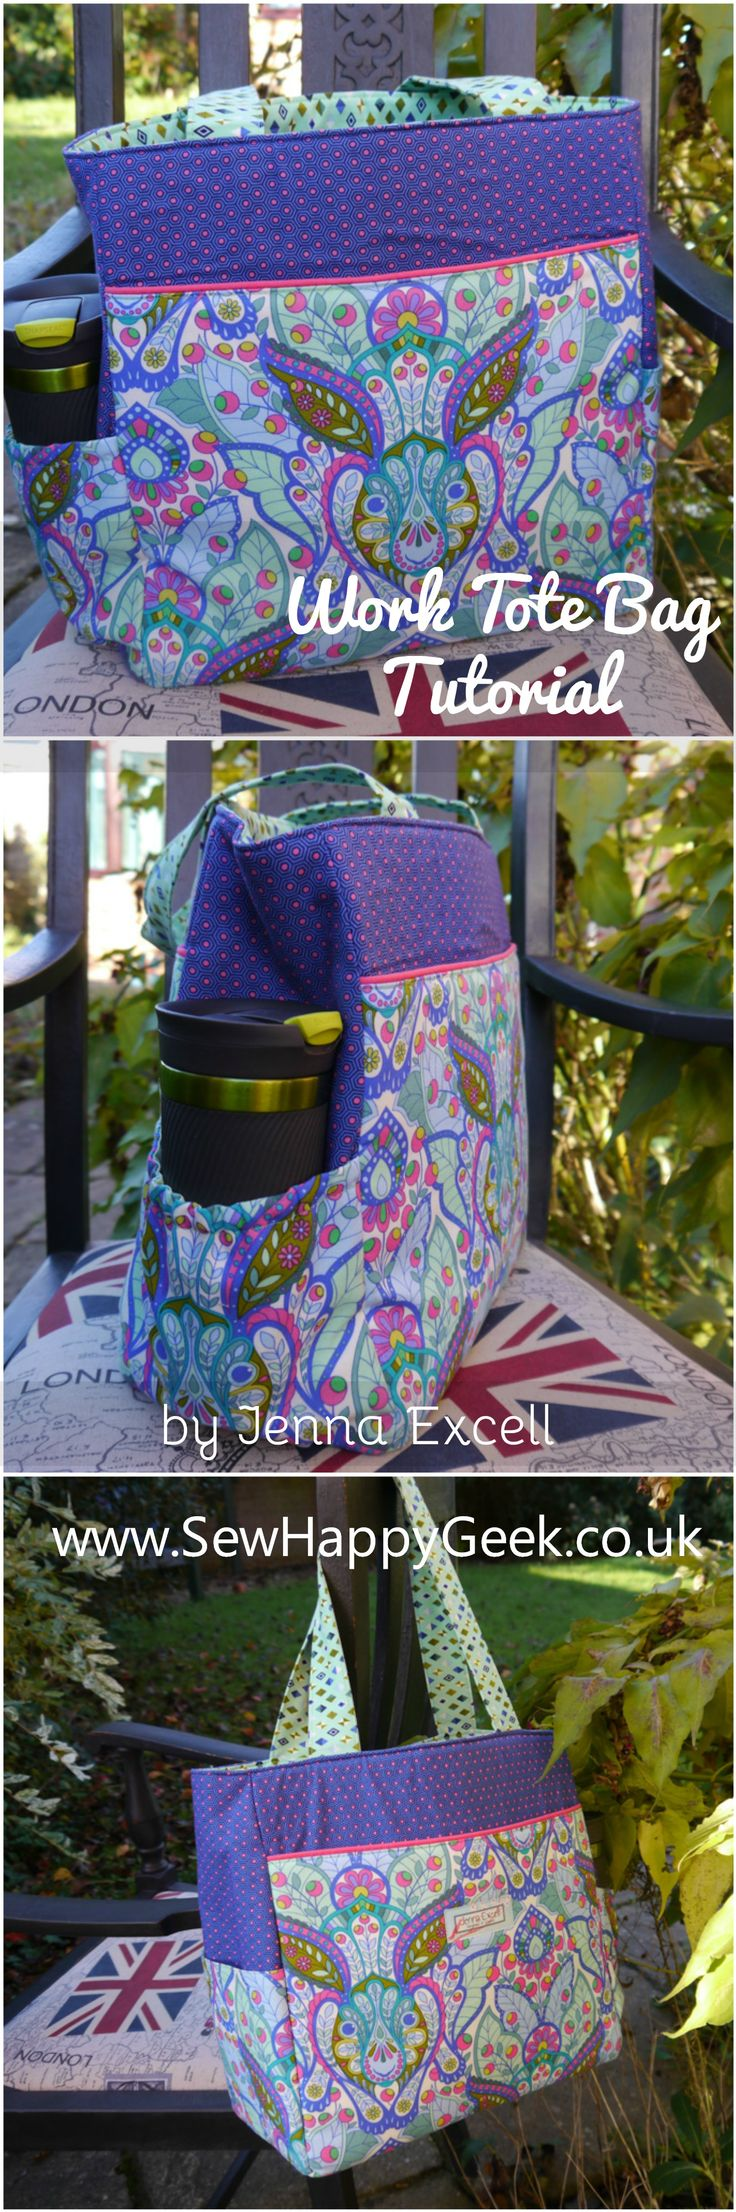 Tutorial: Take it to Work Tote Bag - Free Tote Sewing Pattern from SewHappyGeek